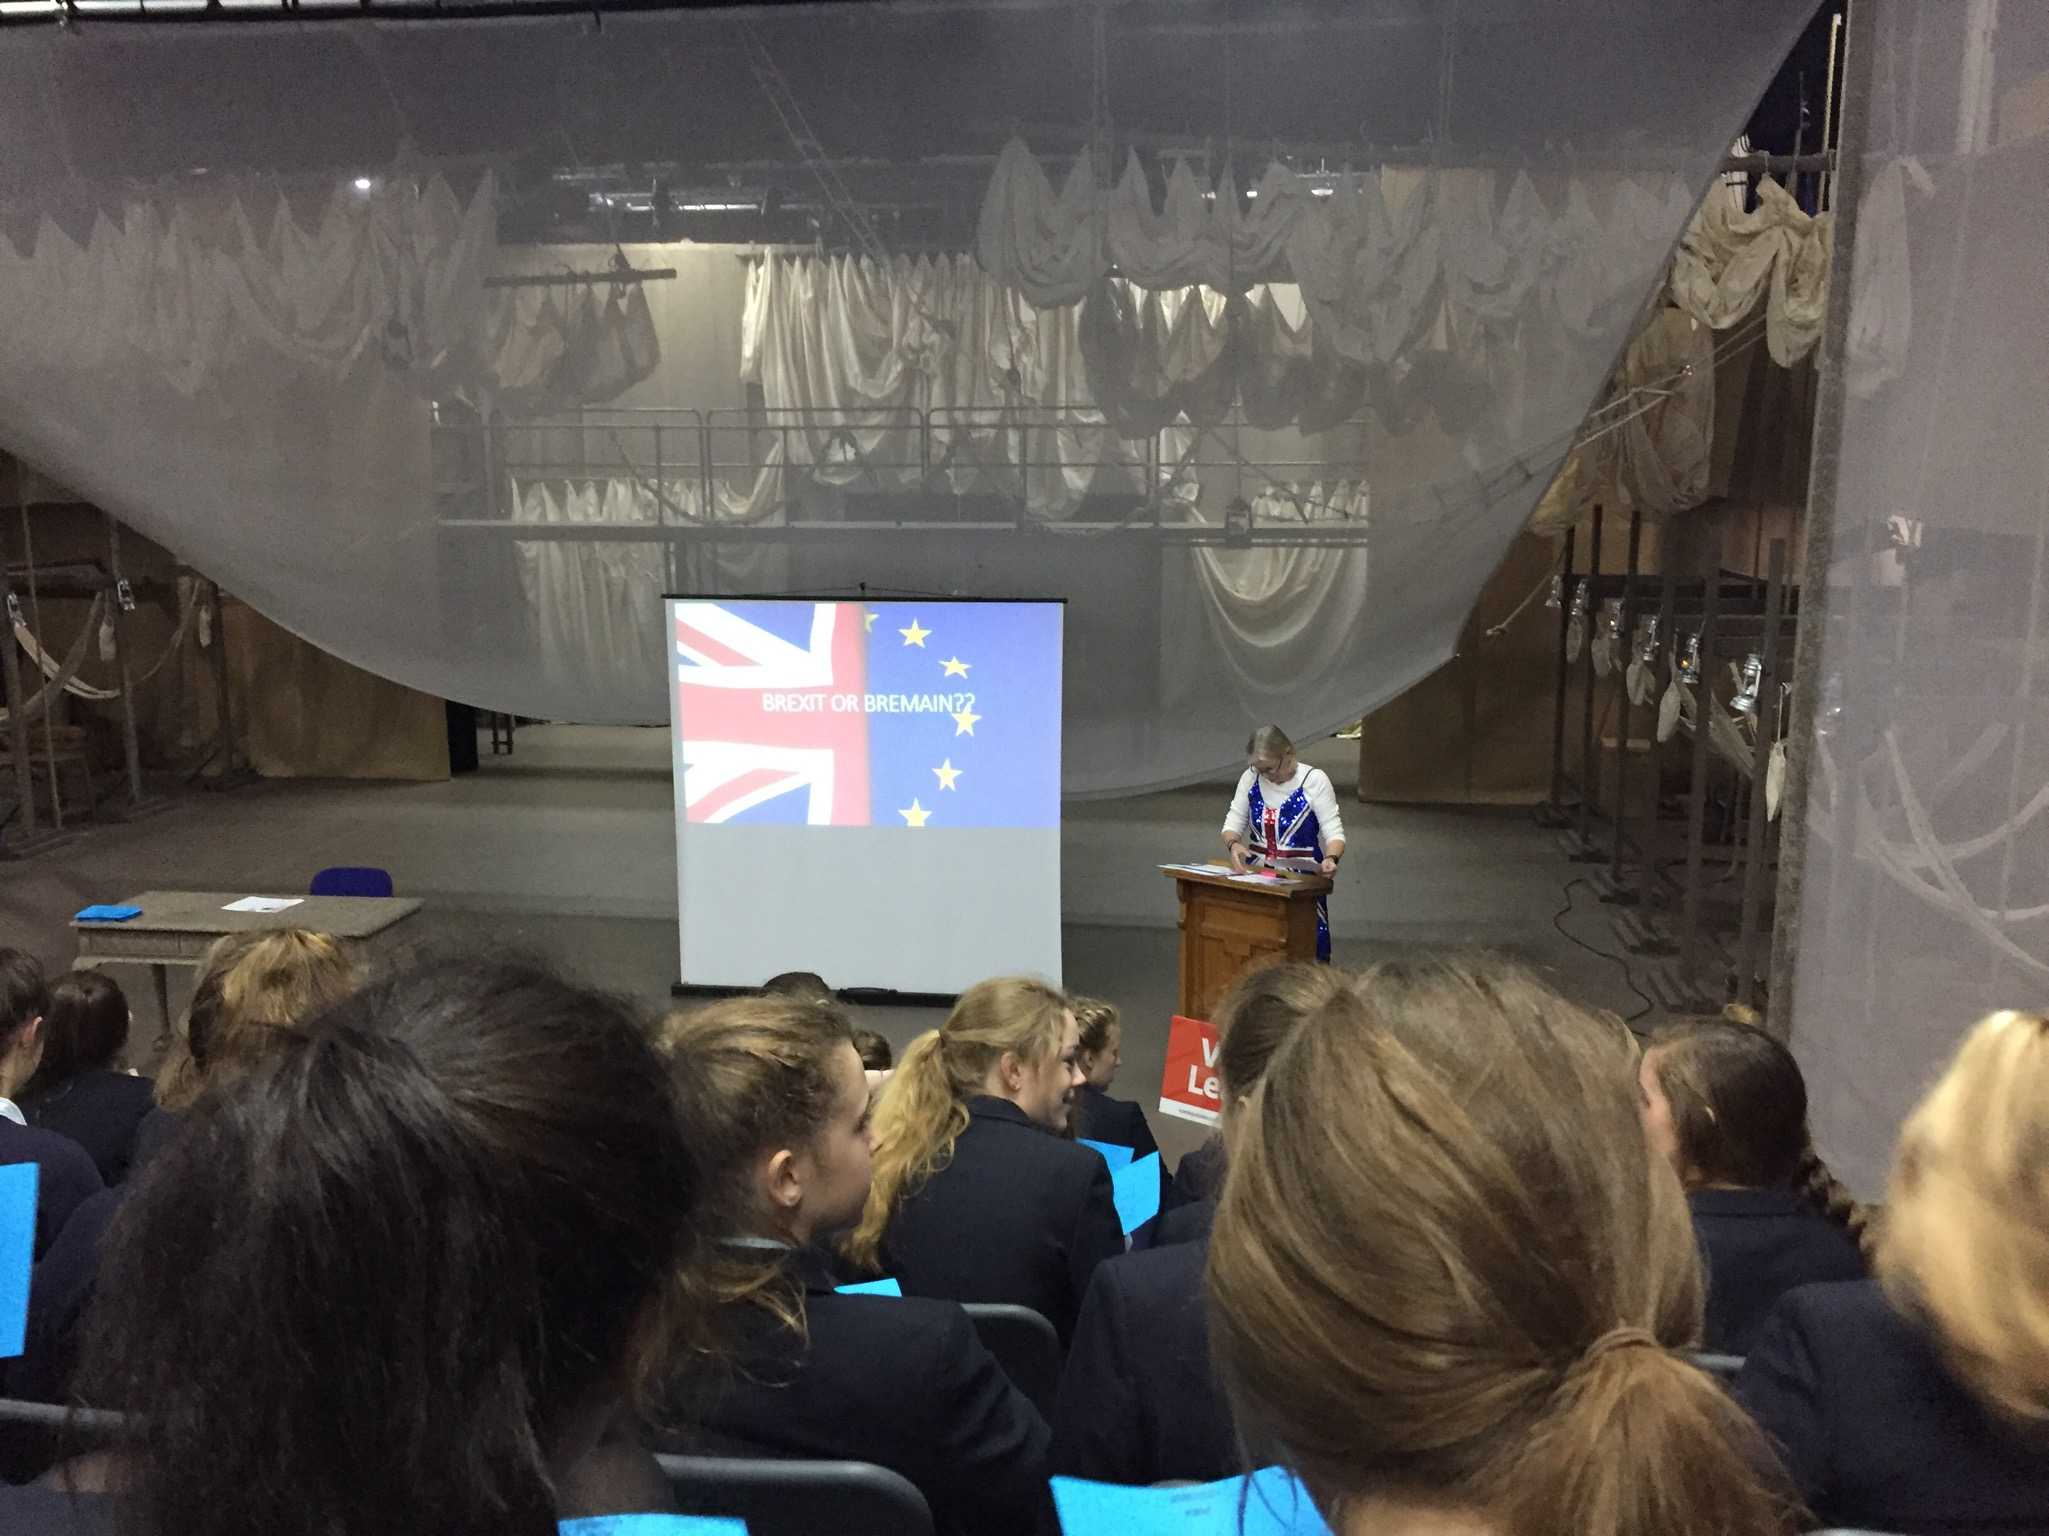 BREXIT OR BREMAIN: Kent College held a mock EU referendum just the day before the actual one. Kent College voted to stay, but the British voted to leave.